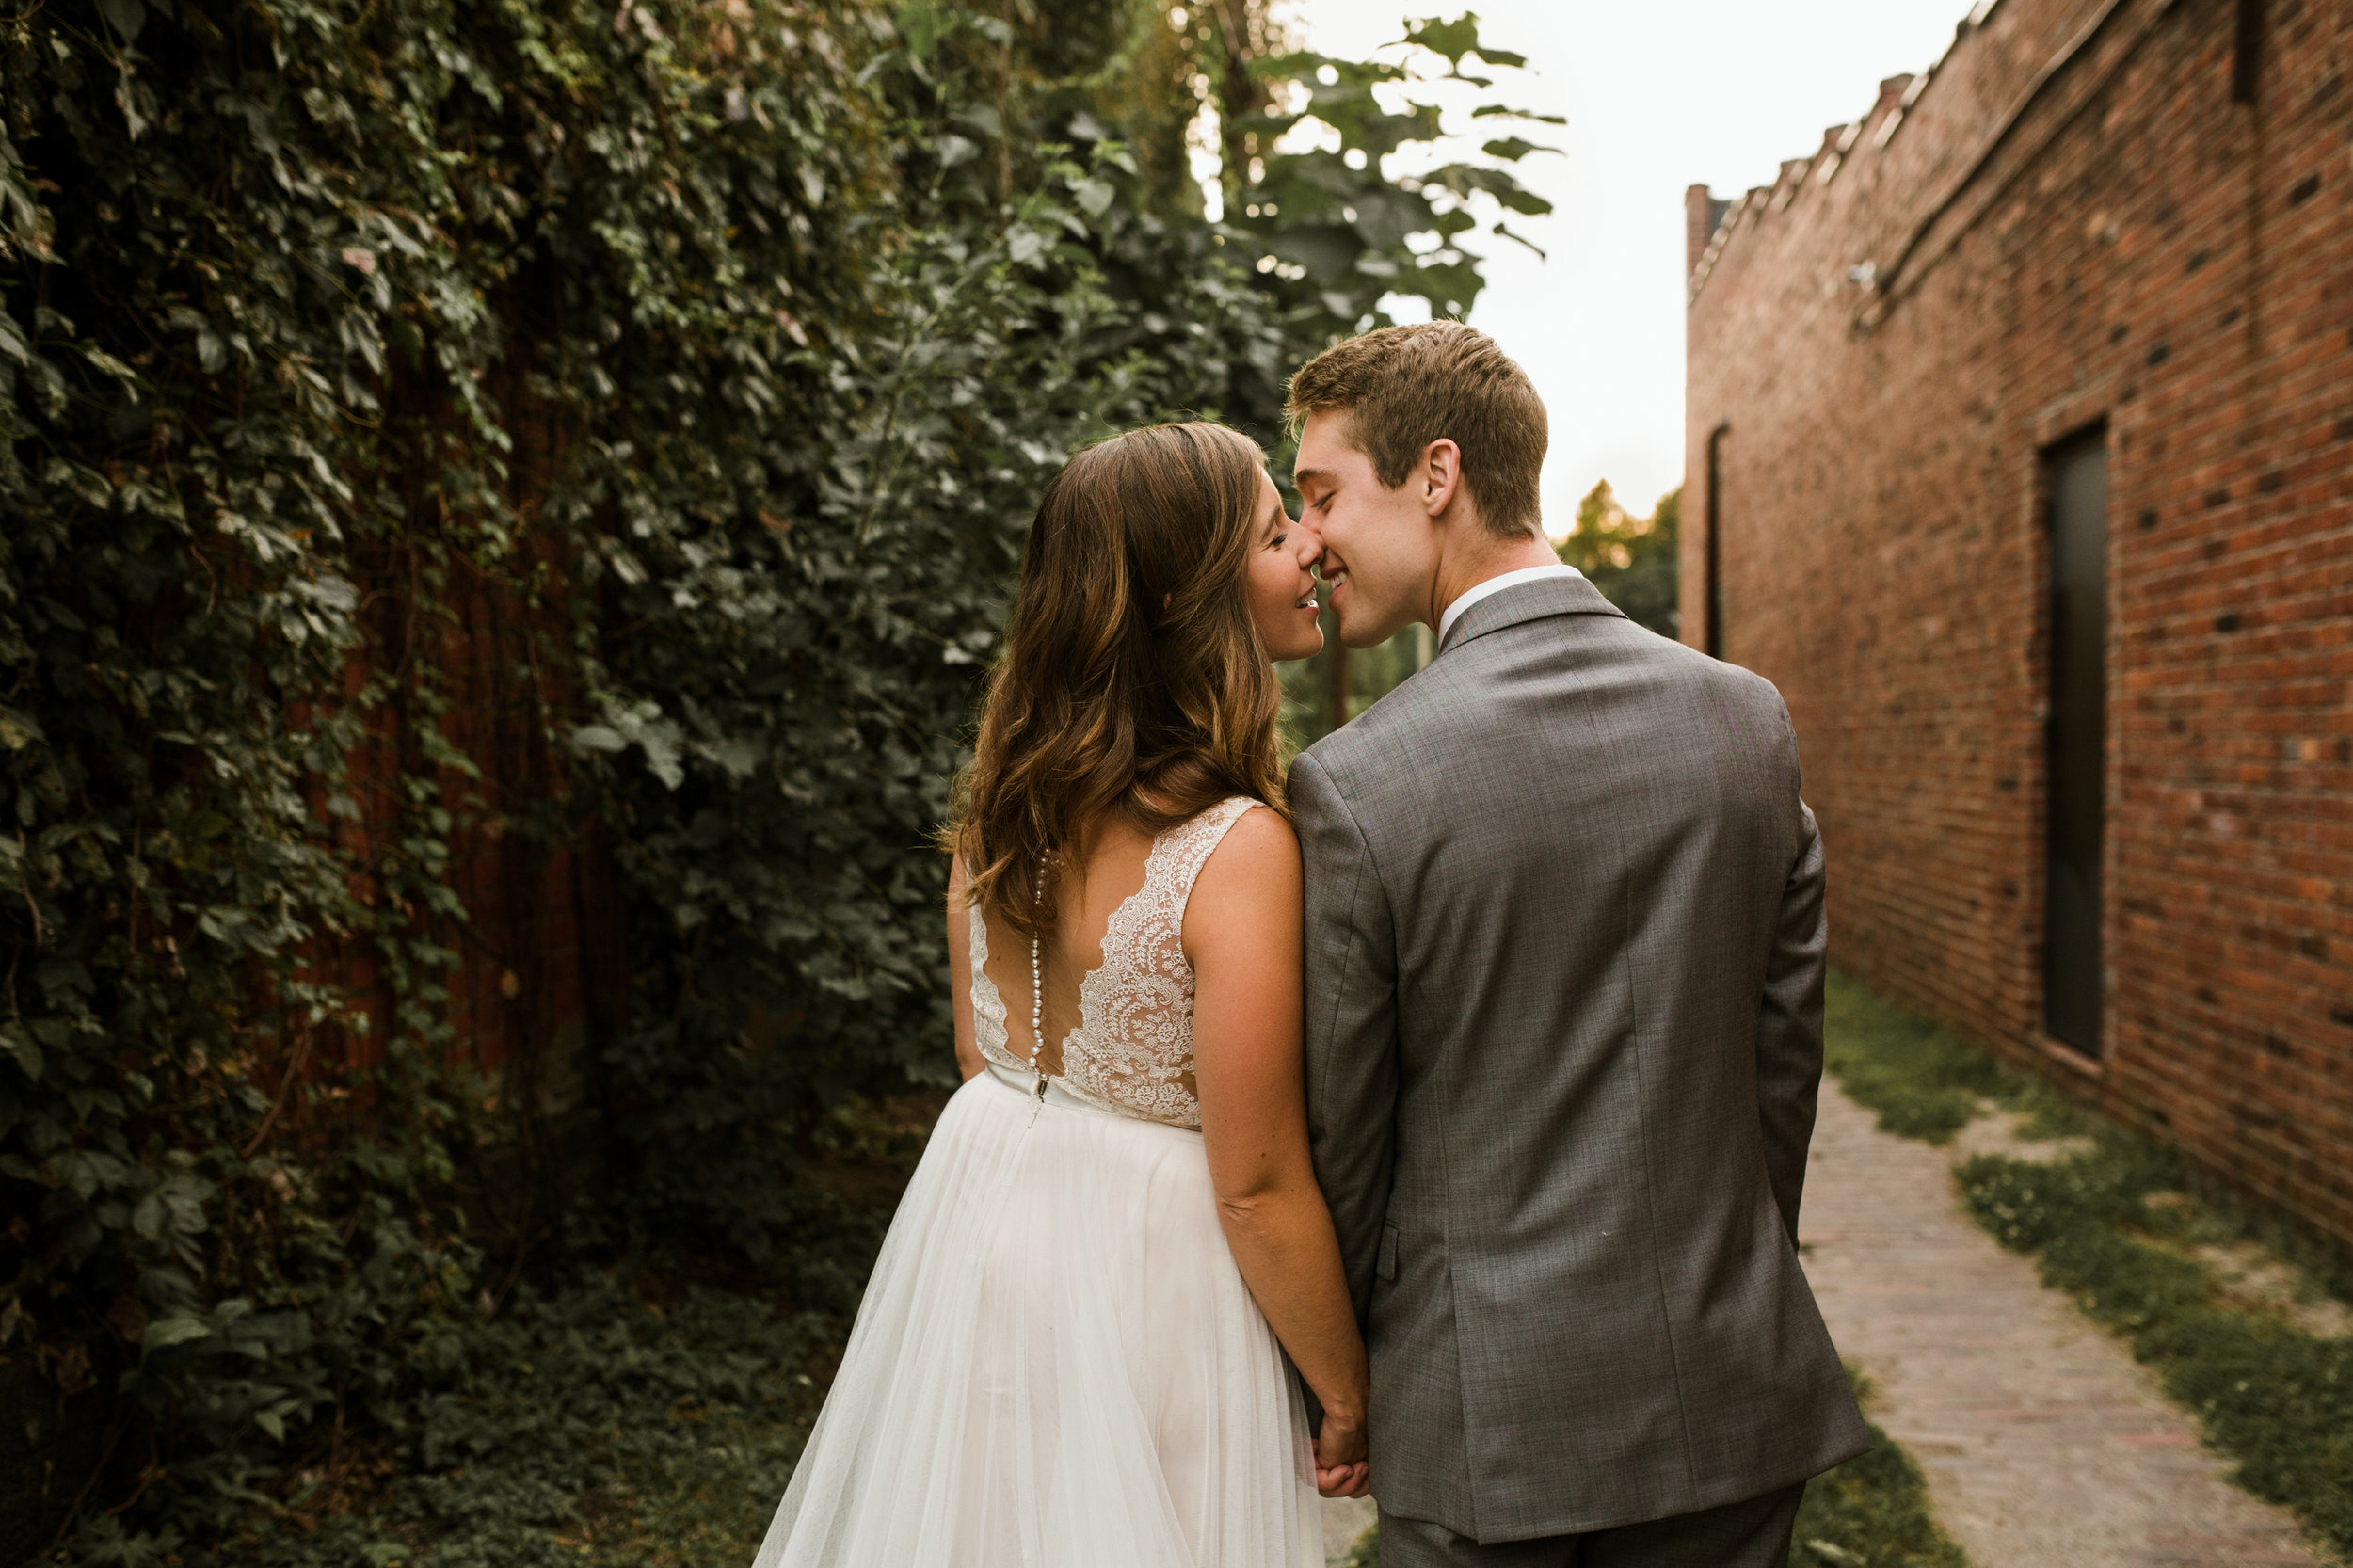 Amanda & Dave Anniversary 2018 Crystal Ludwick Photo Louisville Wedding Photographer Kentucky Wedding Photographer (40 of 43).jpg